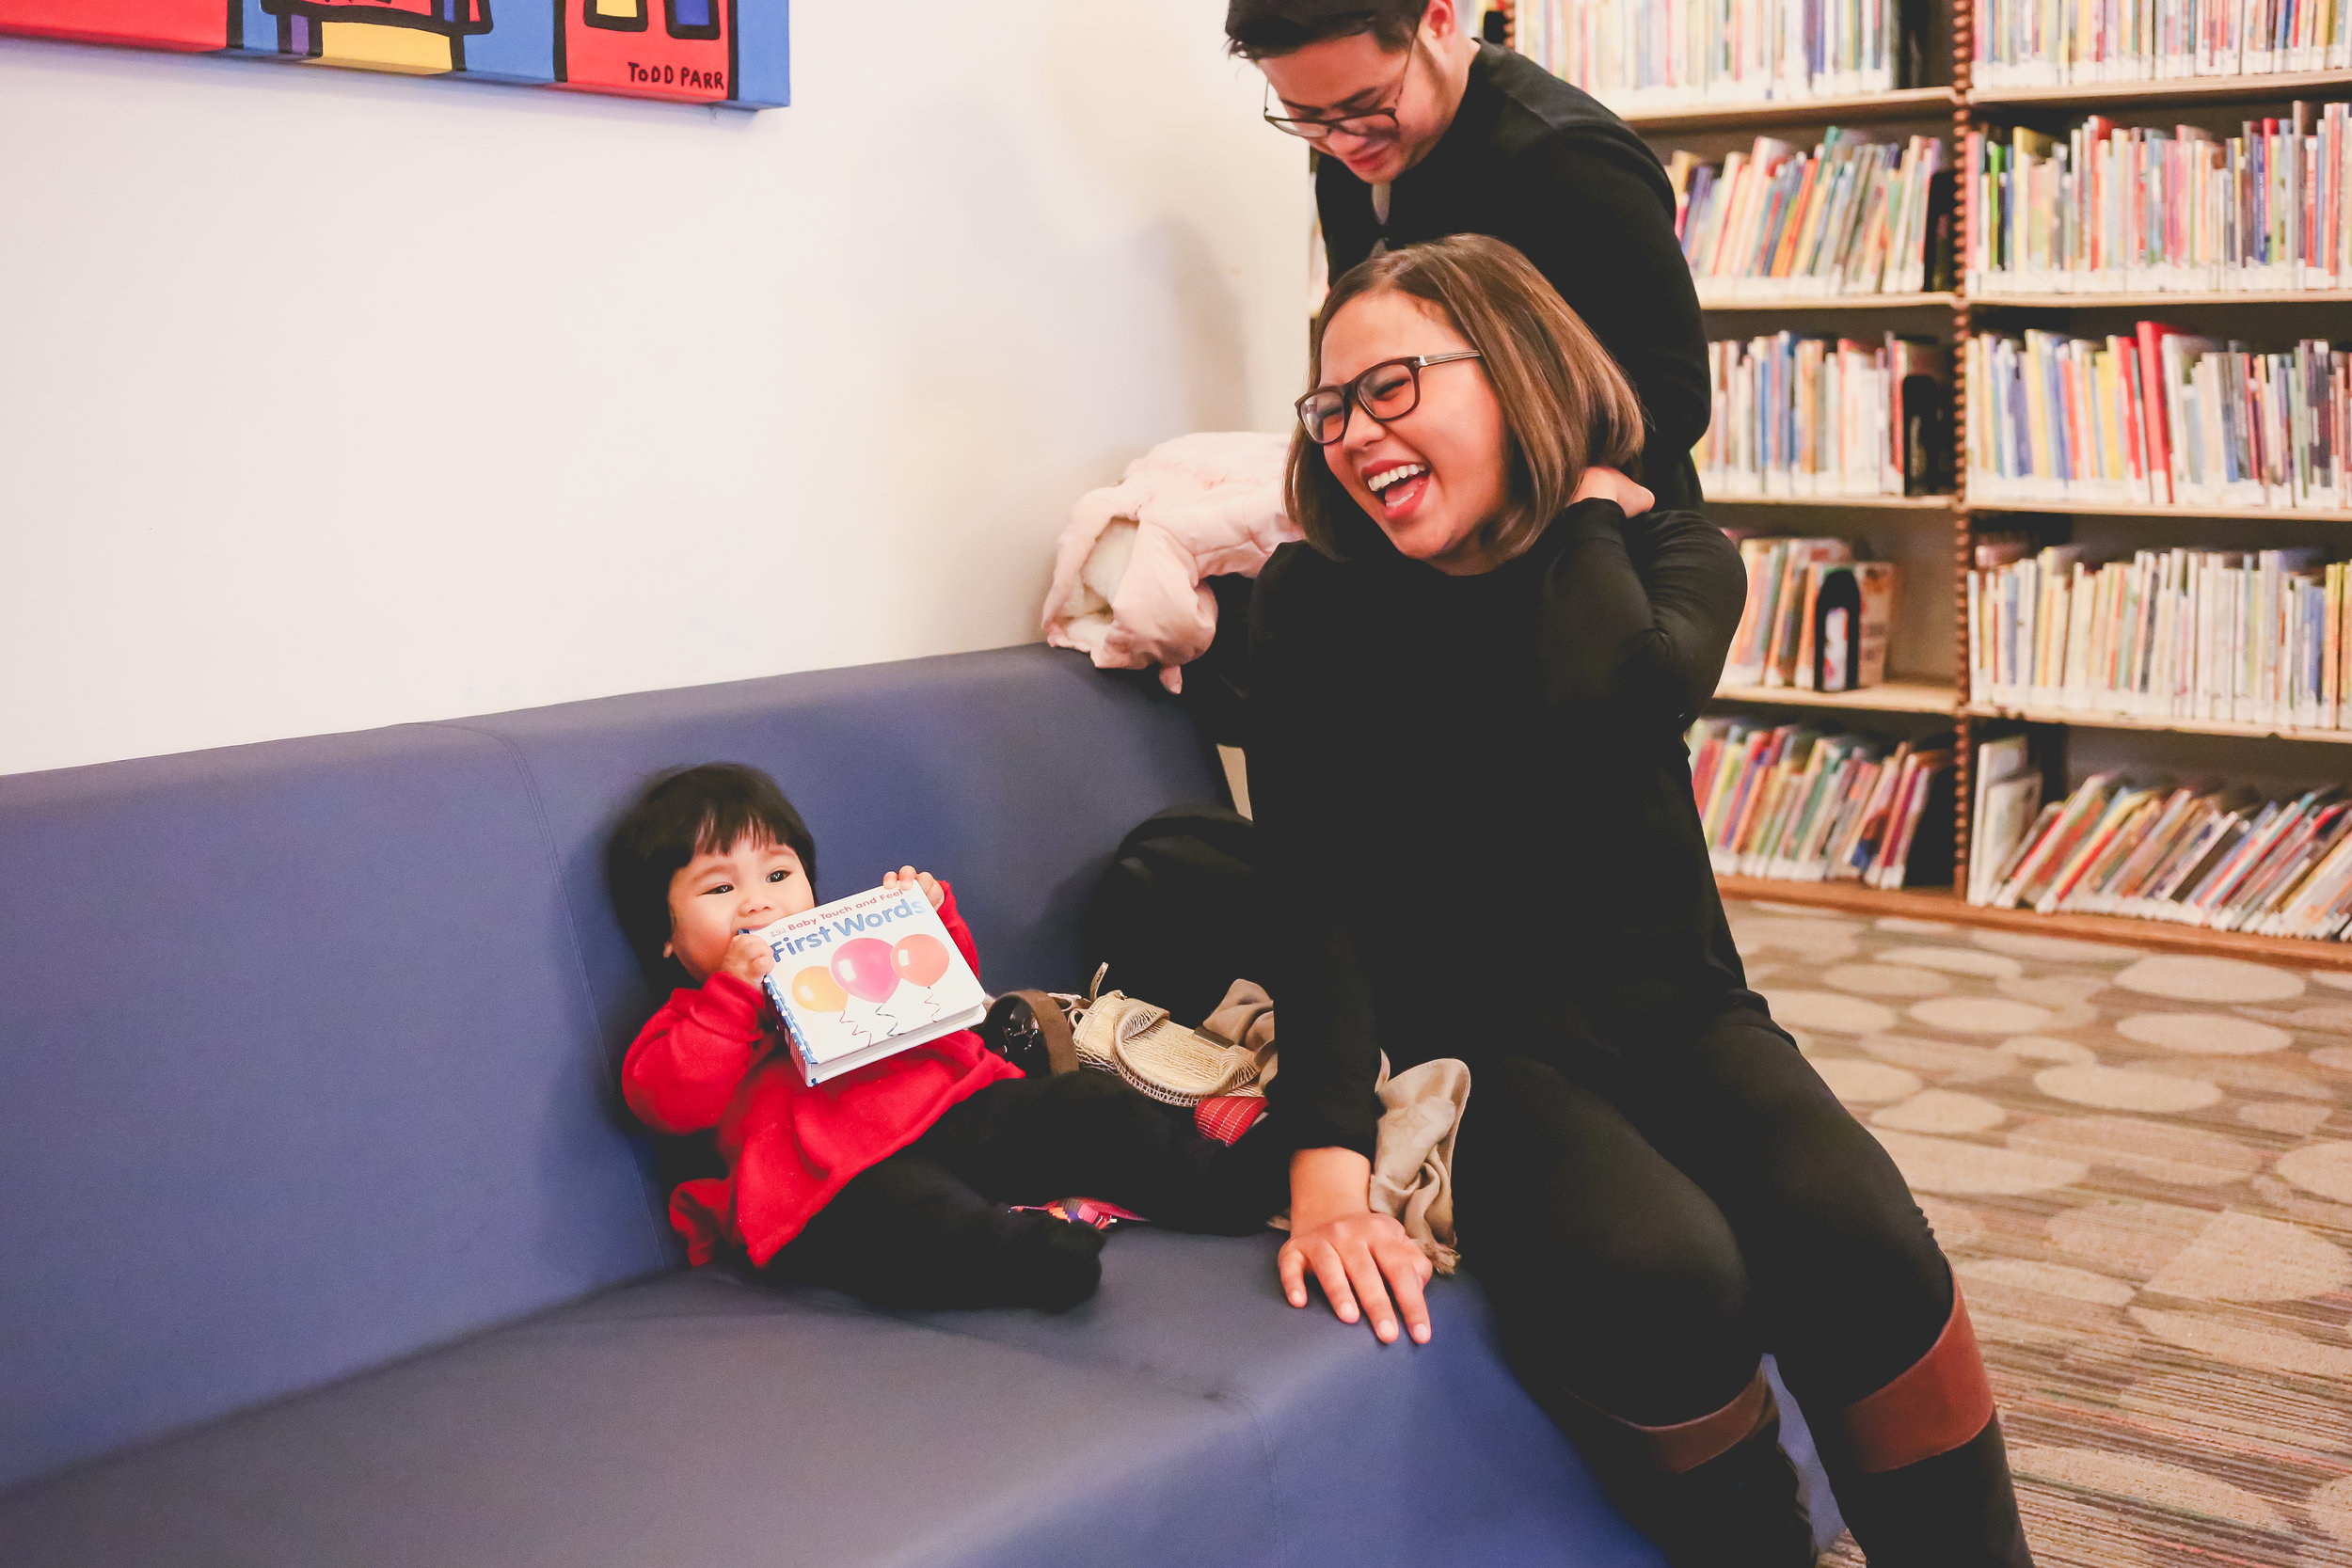 Sharing laughs during a family photography session at the New York Public Library. Photo by Jen Grima, NYC vacation photographer.